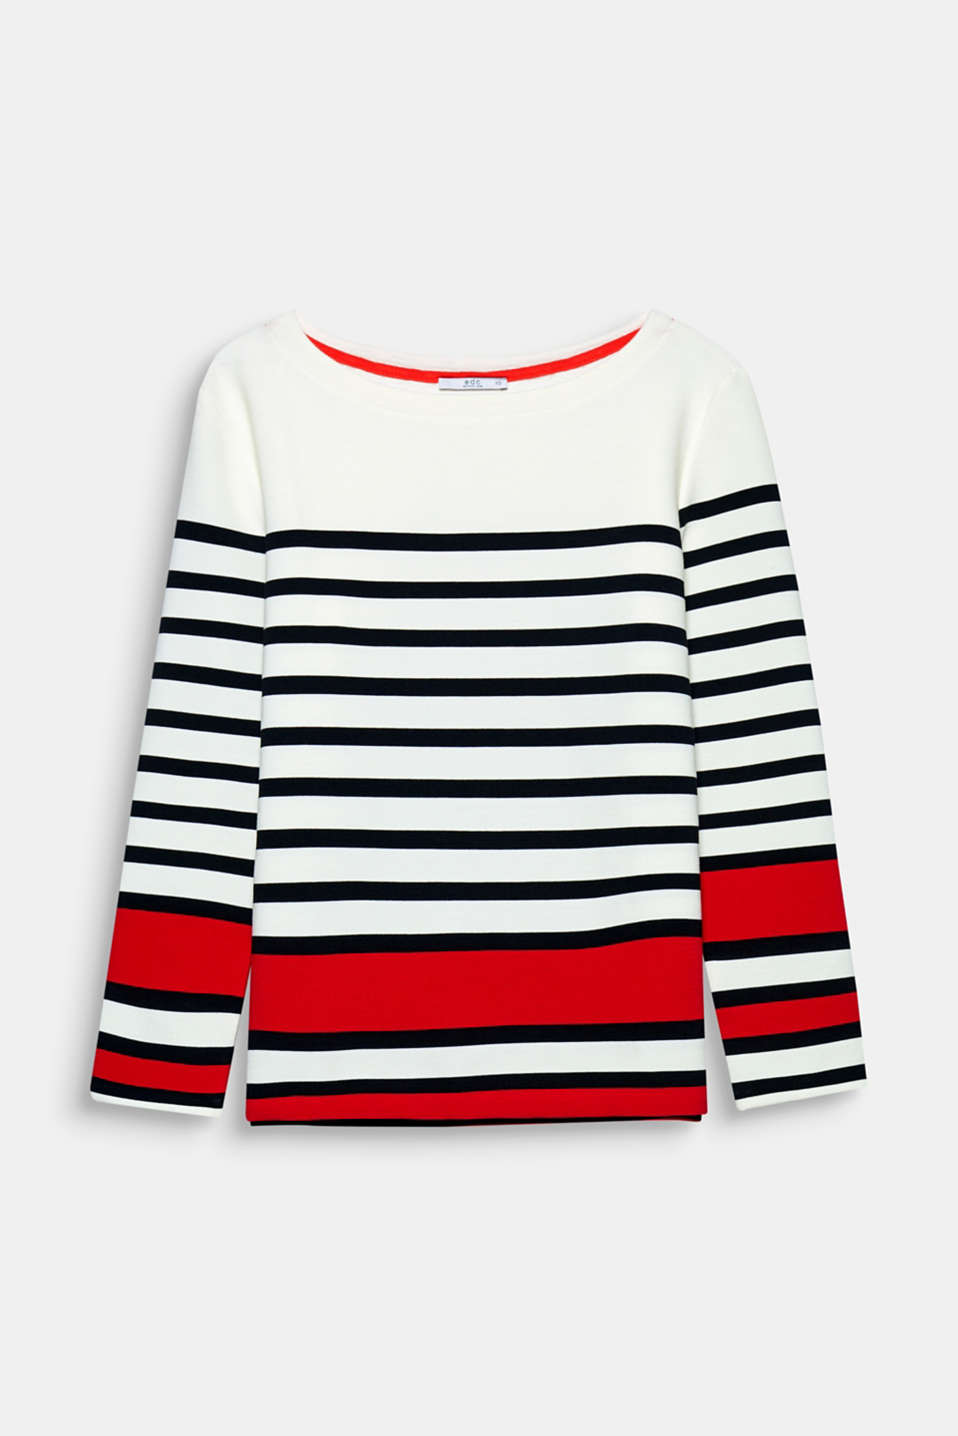 This sweatshirt with graphic stripes, a fine ribbed texture and trendy oversized design has a fresh, cool look.